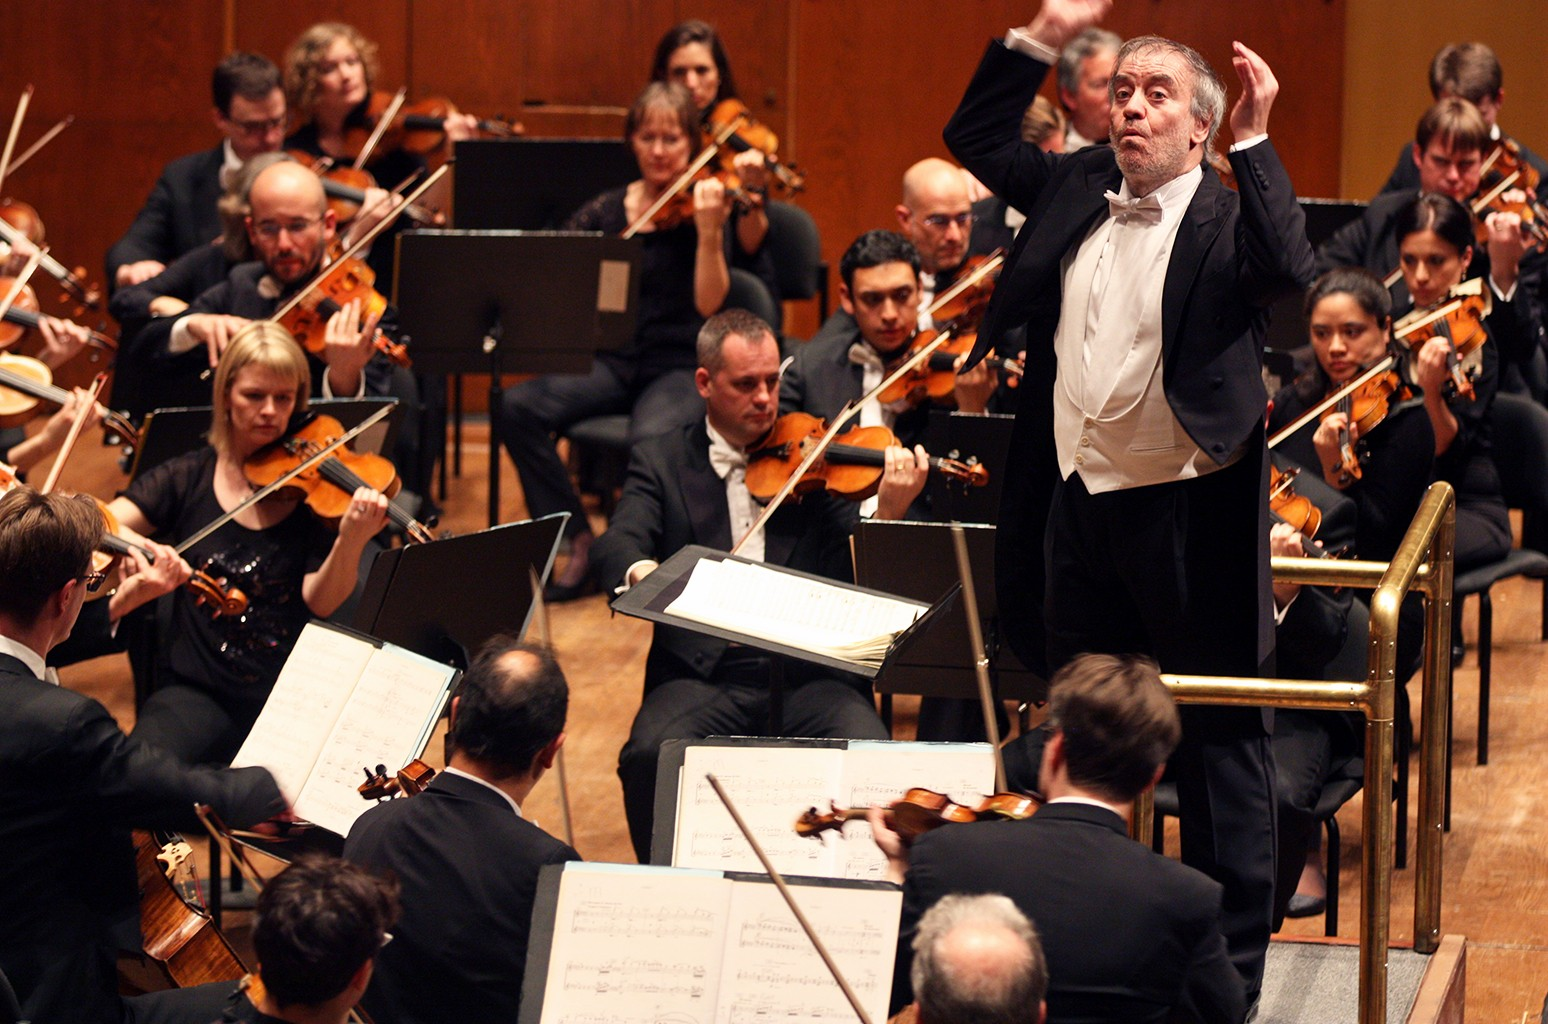 London Symphony Orchestra performs at David Geffen Hall on Oct. 23, 2015.